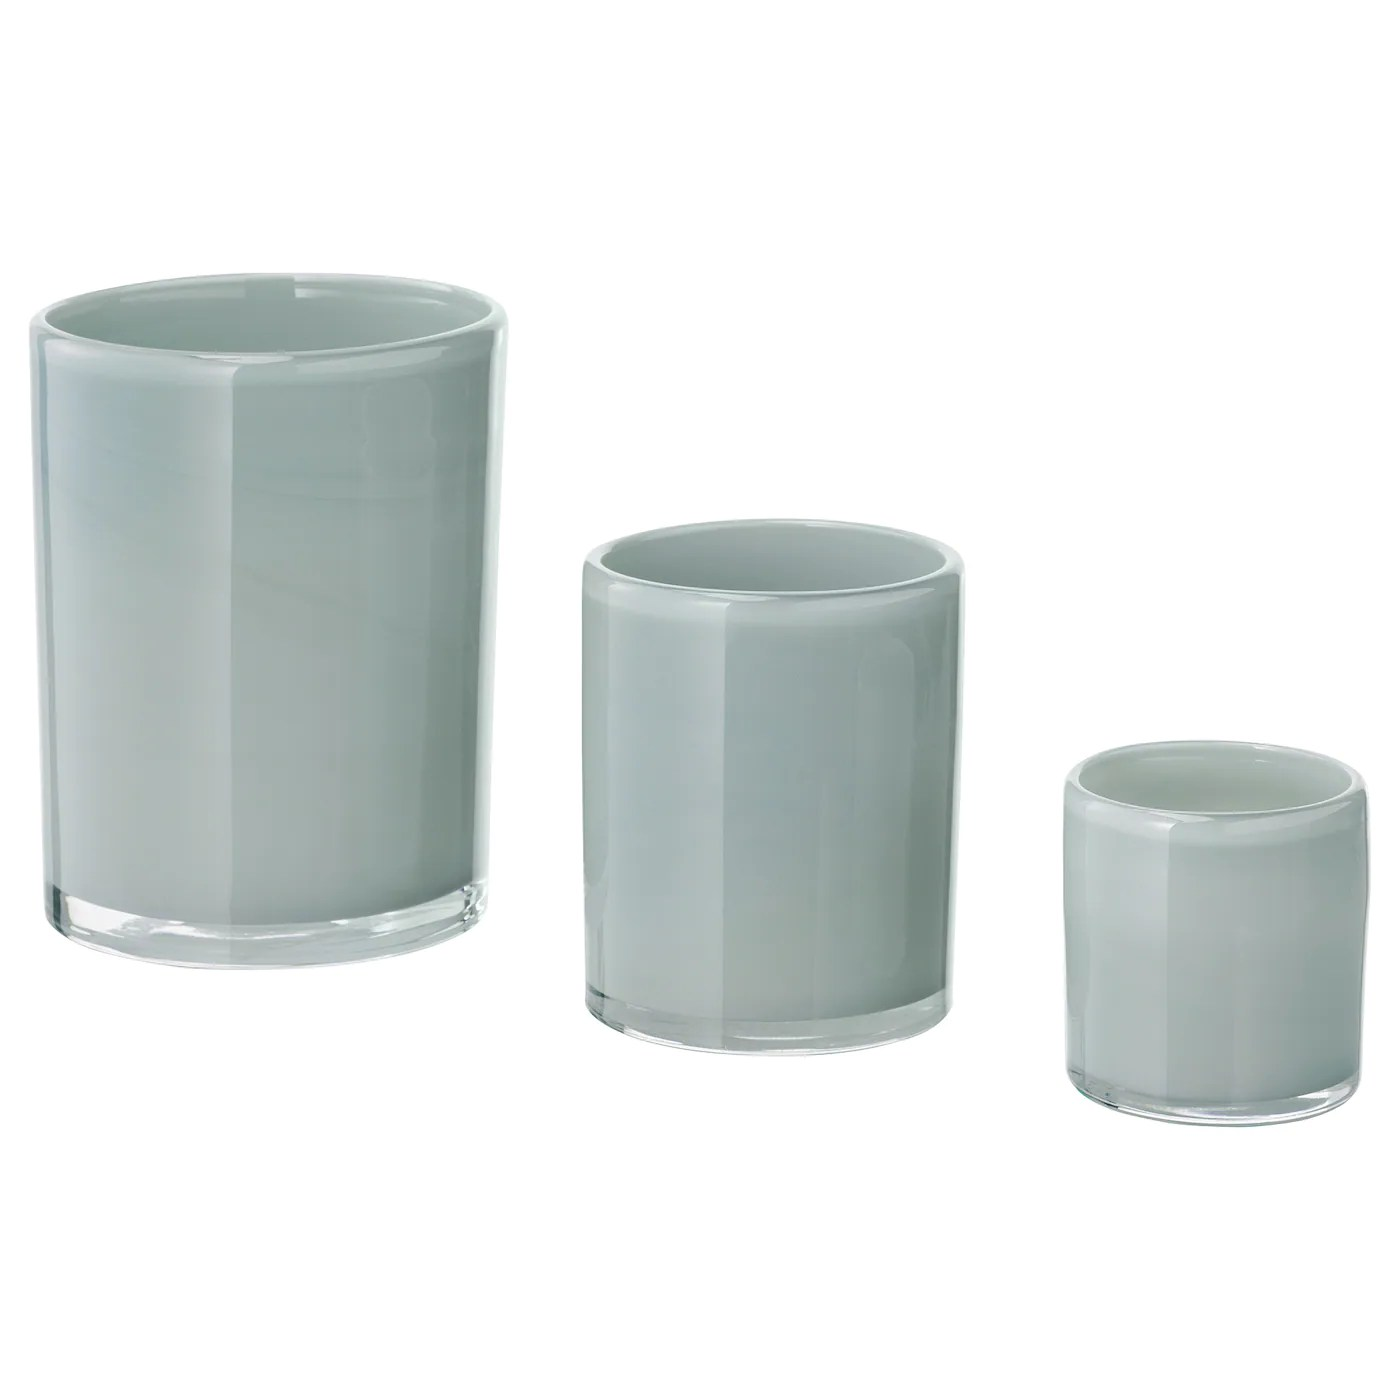 Buy Candles Online Candles Candle Holders Home Fragrances Ikea